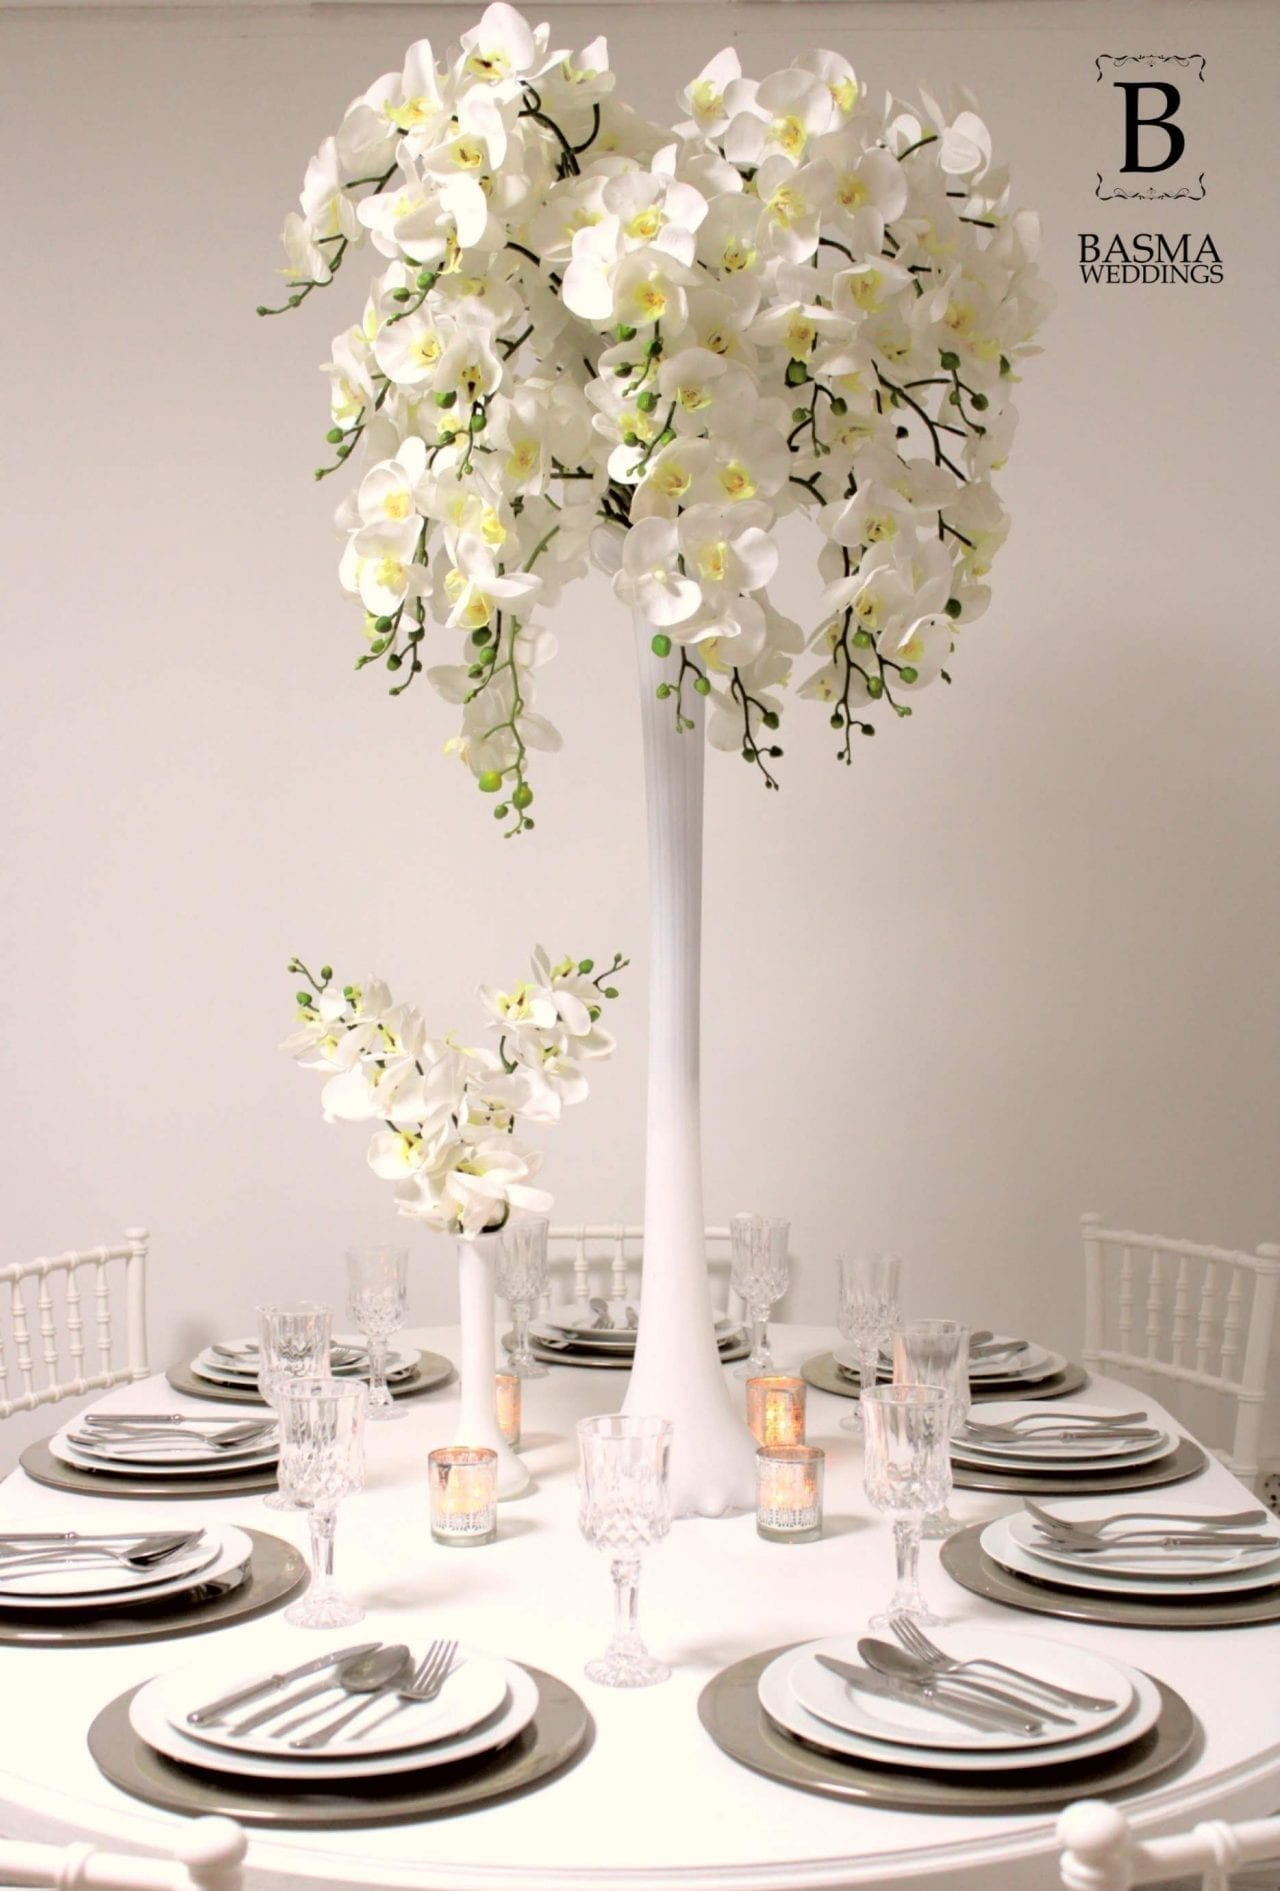 Candles roses setup pink Orchid tree flowers